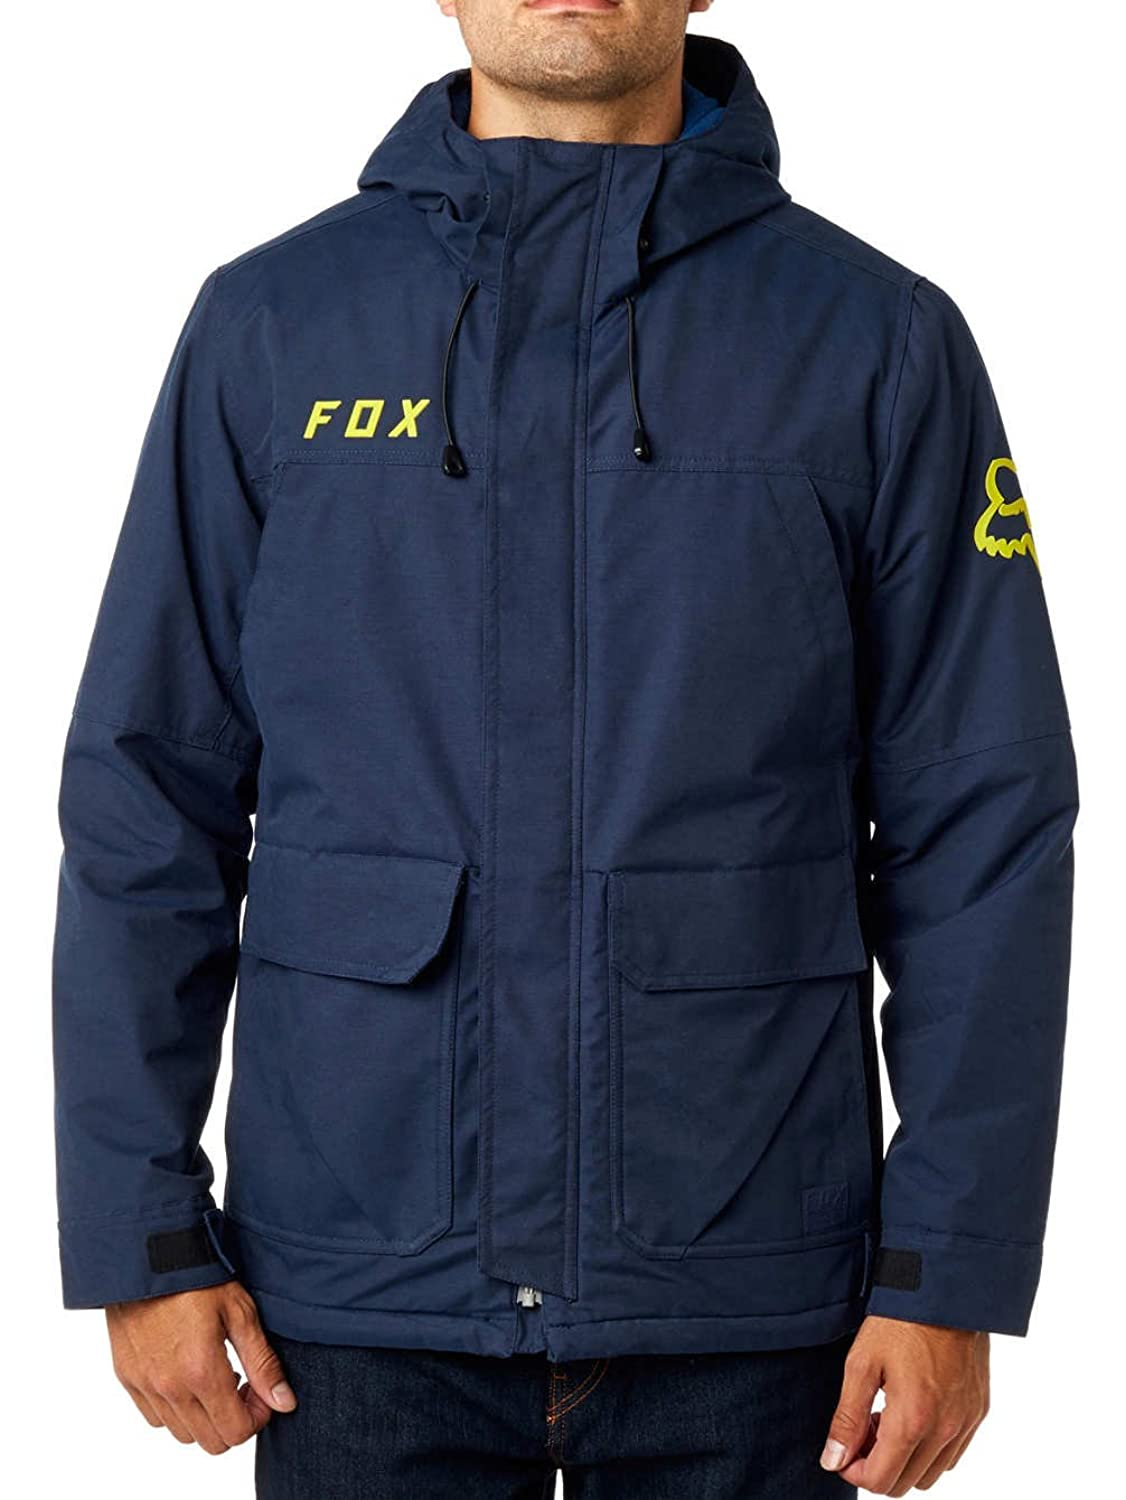 Fox OUTERWEAR メンズ B0727R6Q7W  ミッドナイト(Midnight) Large